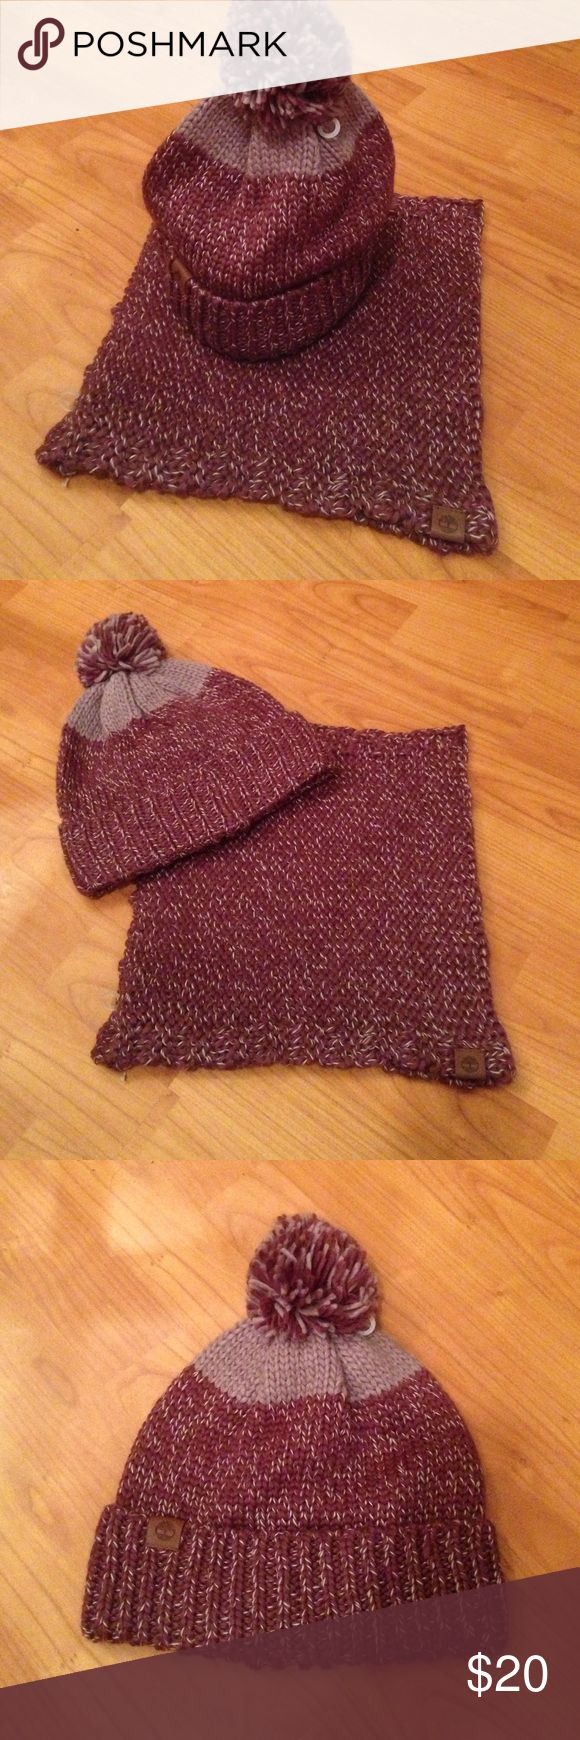 Timberland Hat and neck warmer set A two toned purple knit hat with matching neck warmer Timberland Accessories Scarves & Wraps